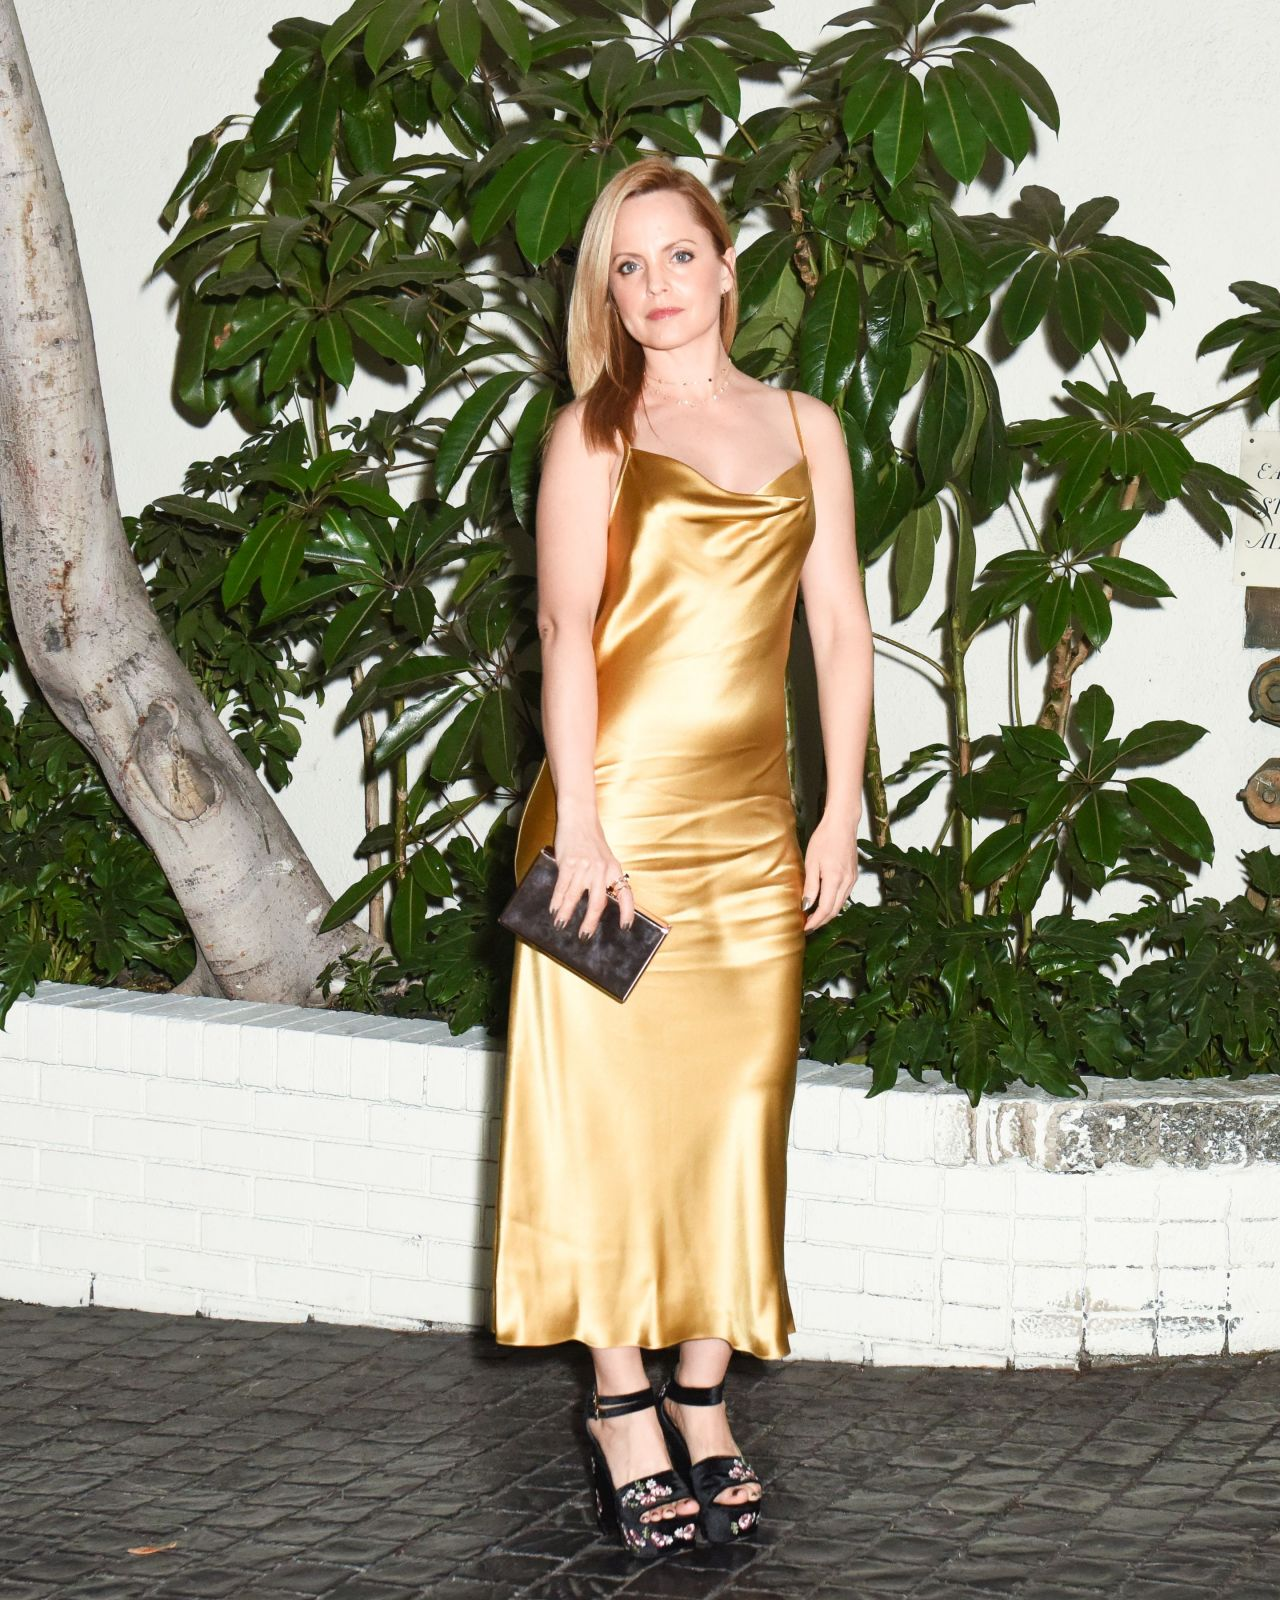 http://celebmafia.com/wp-content/uploads/2018/01/mena-suvari-w-magazine-celebrates-its-best-performances-portfolio-and-the-golden-globes-in-la-7.jpg